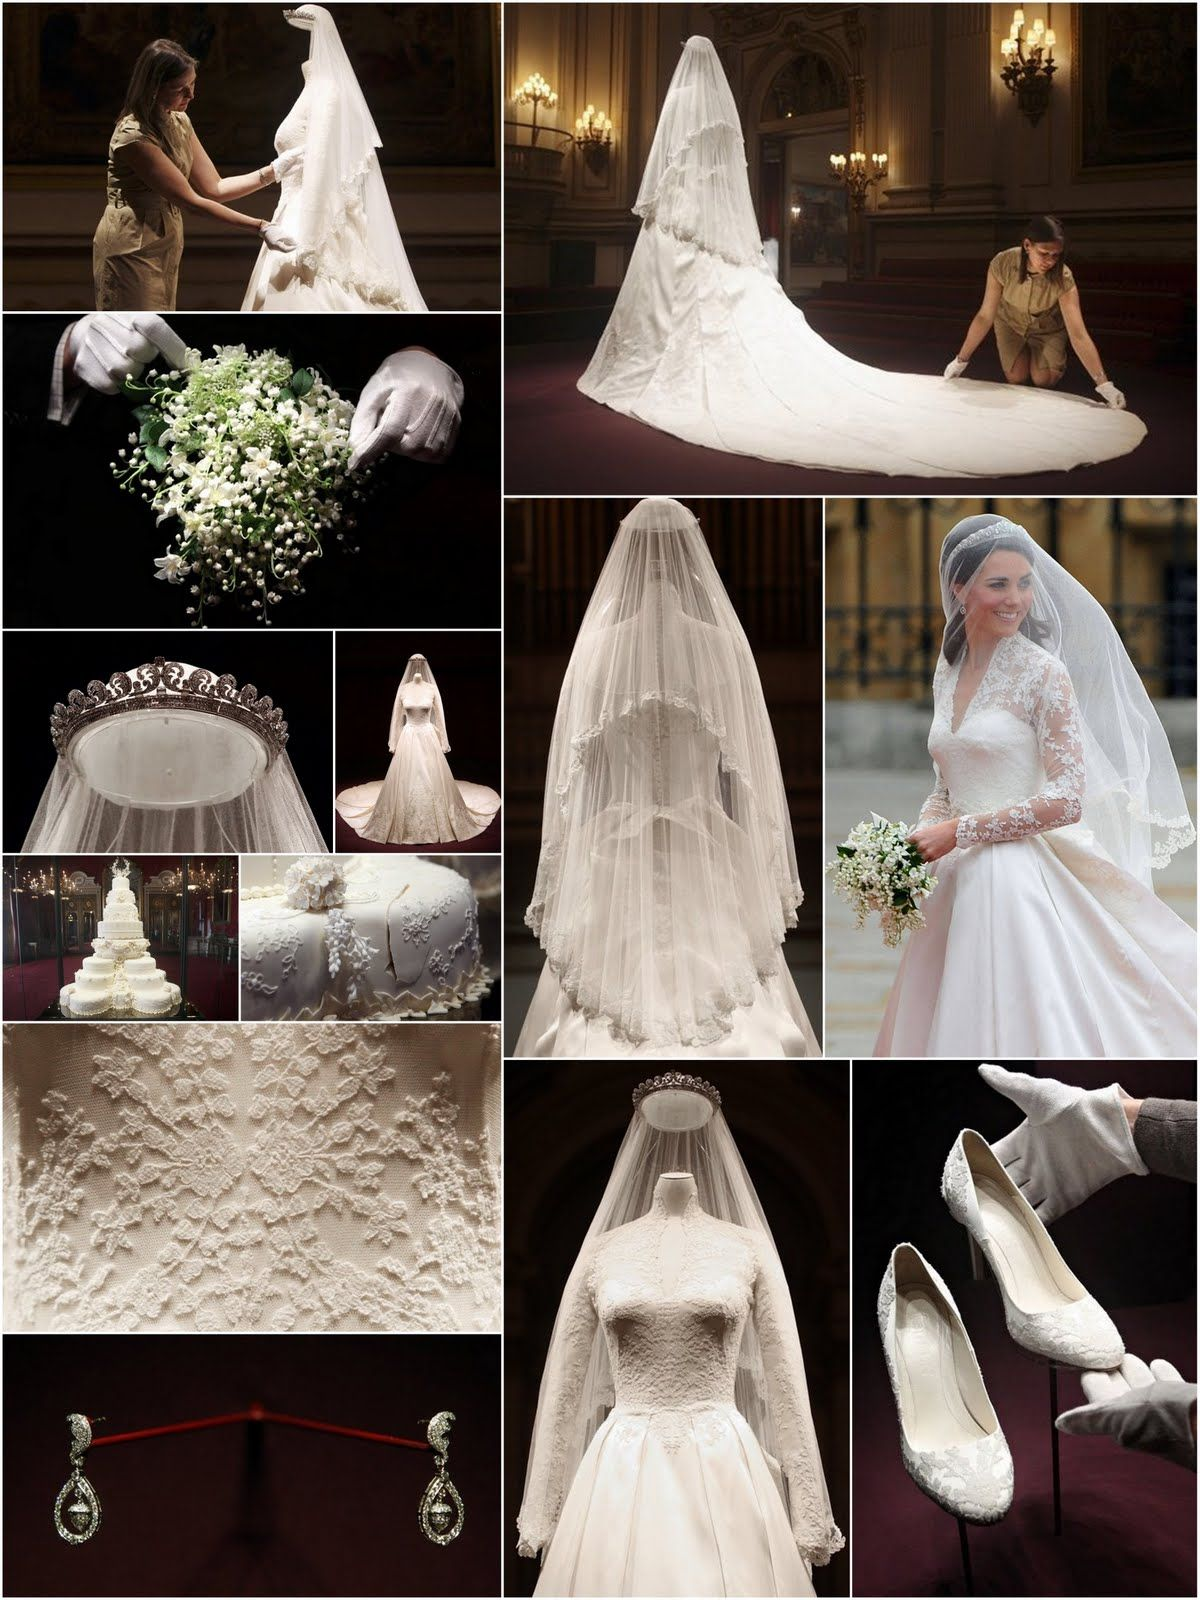 Kate Middleton S Wedding Dress On Display Kate Middleton Wedding Dress Kate Middleton Wedding Wedding